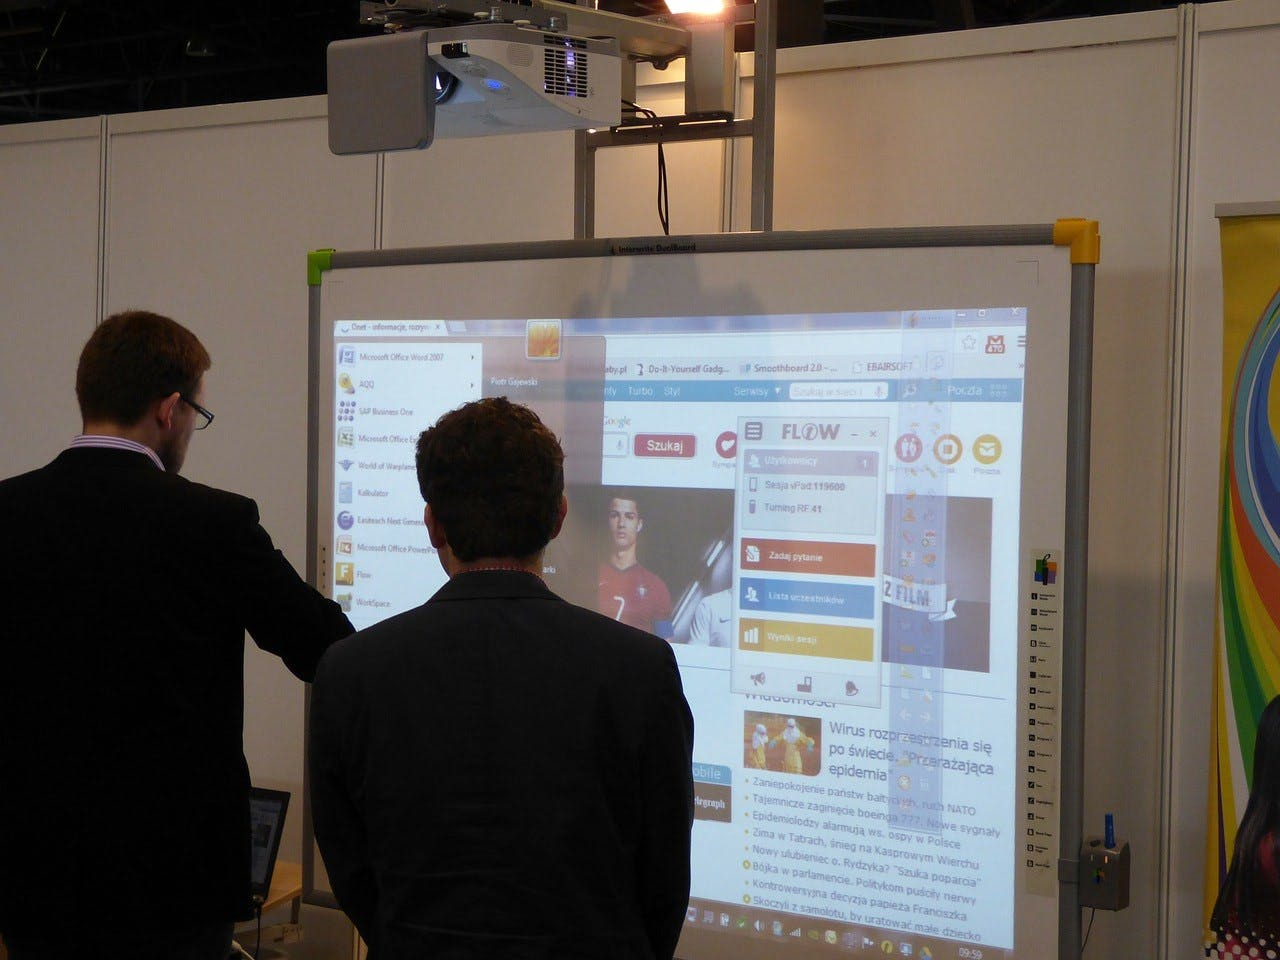 Man viewing interactive whiteboard at trade show exhibit.